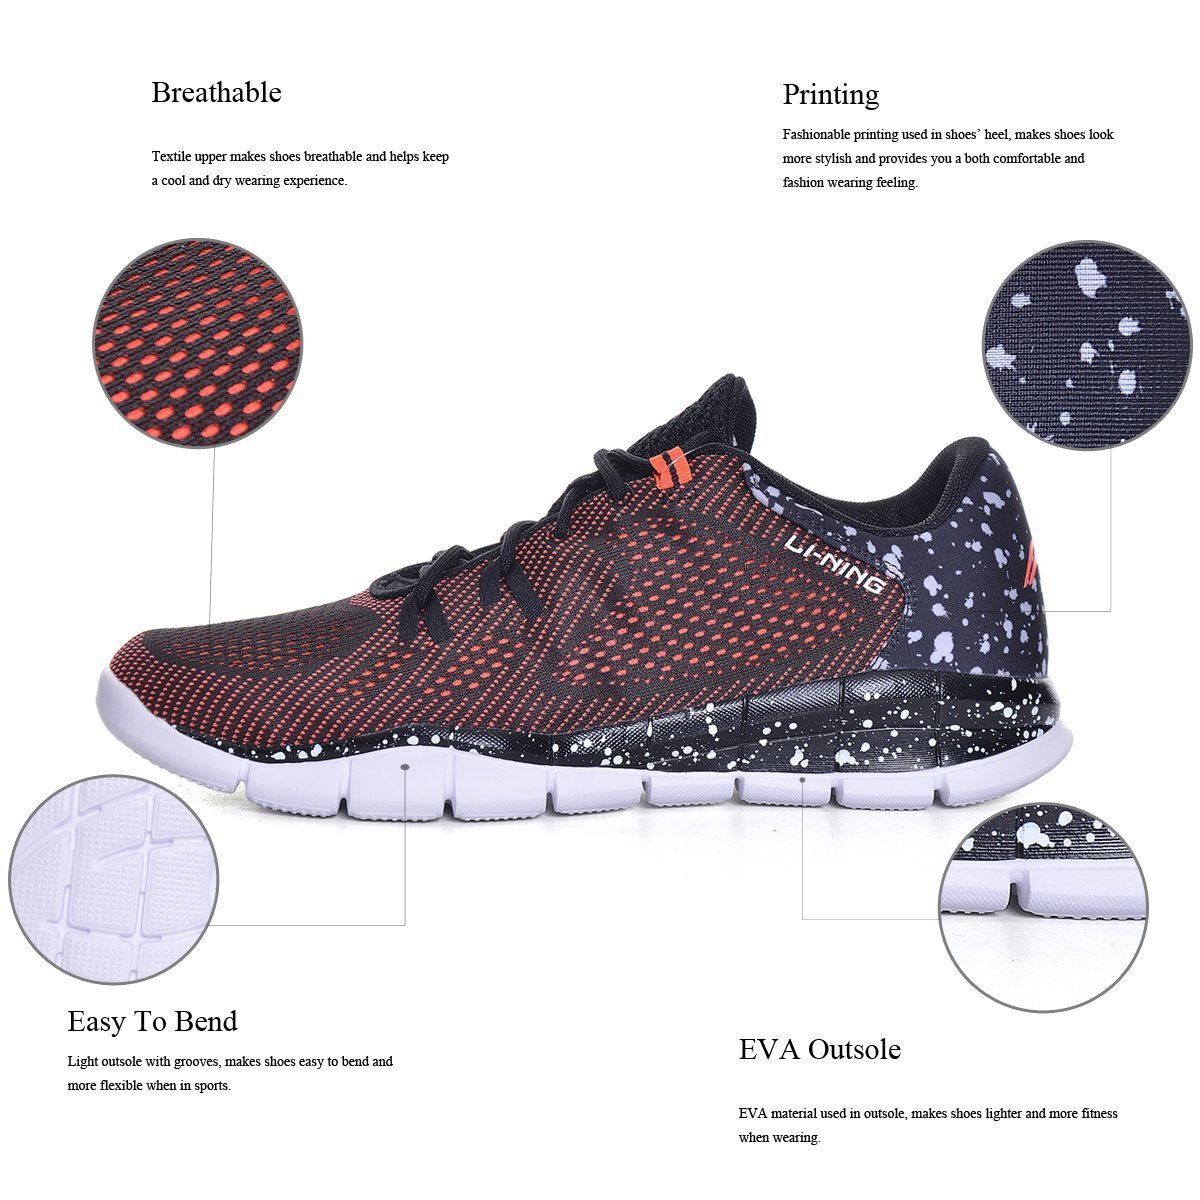 Breathable and Lightweight Athletic Shoes with Flexible Outsole for Running-5km